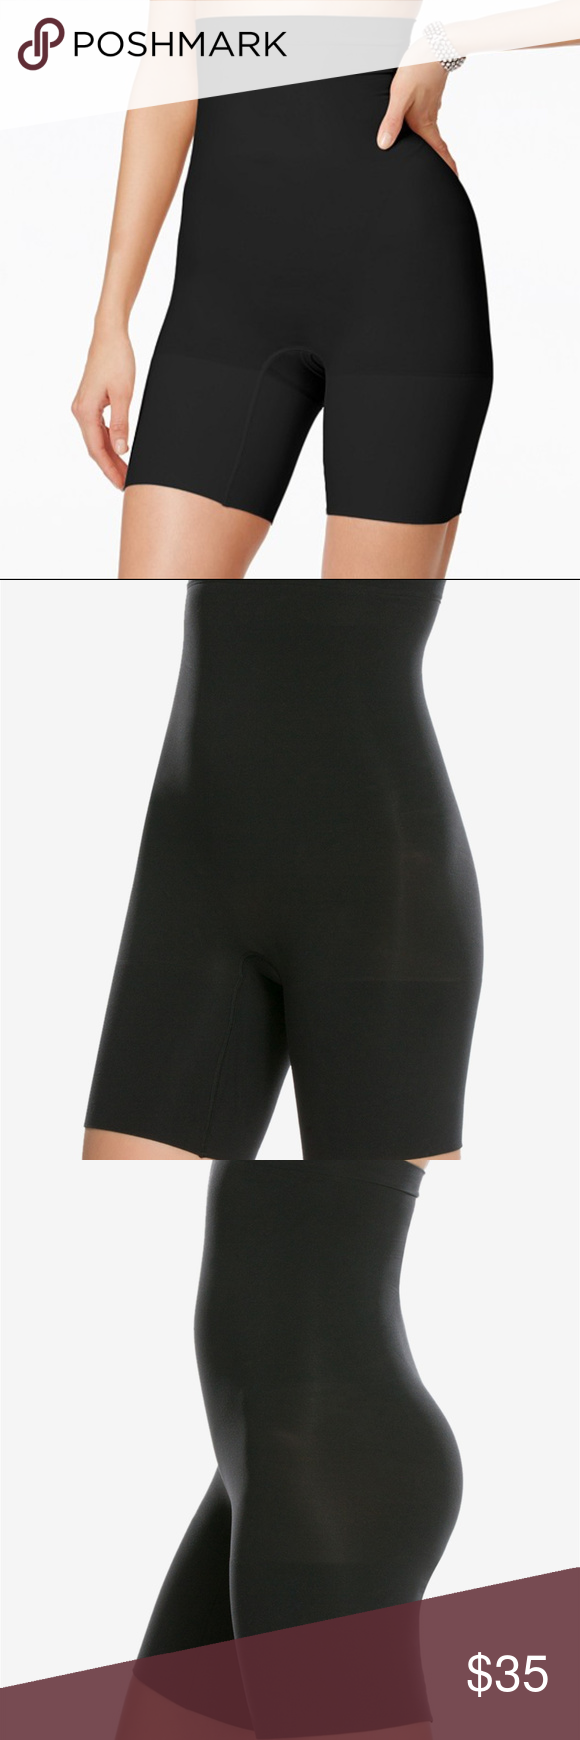 Black S Star Power by Spanx Women/'s Firm Control On Air High-Waisted Girl Short